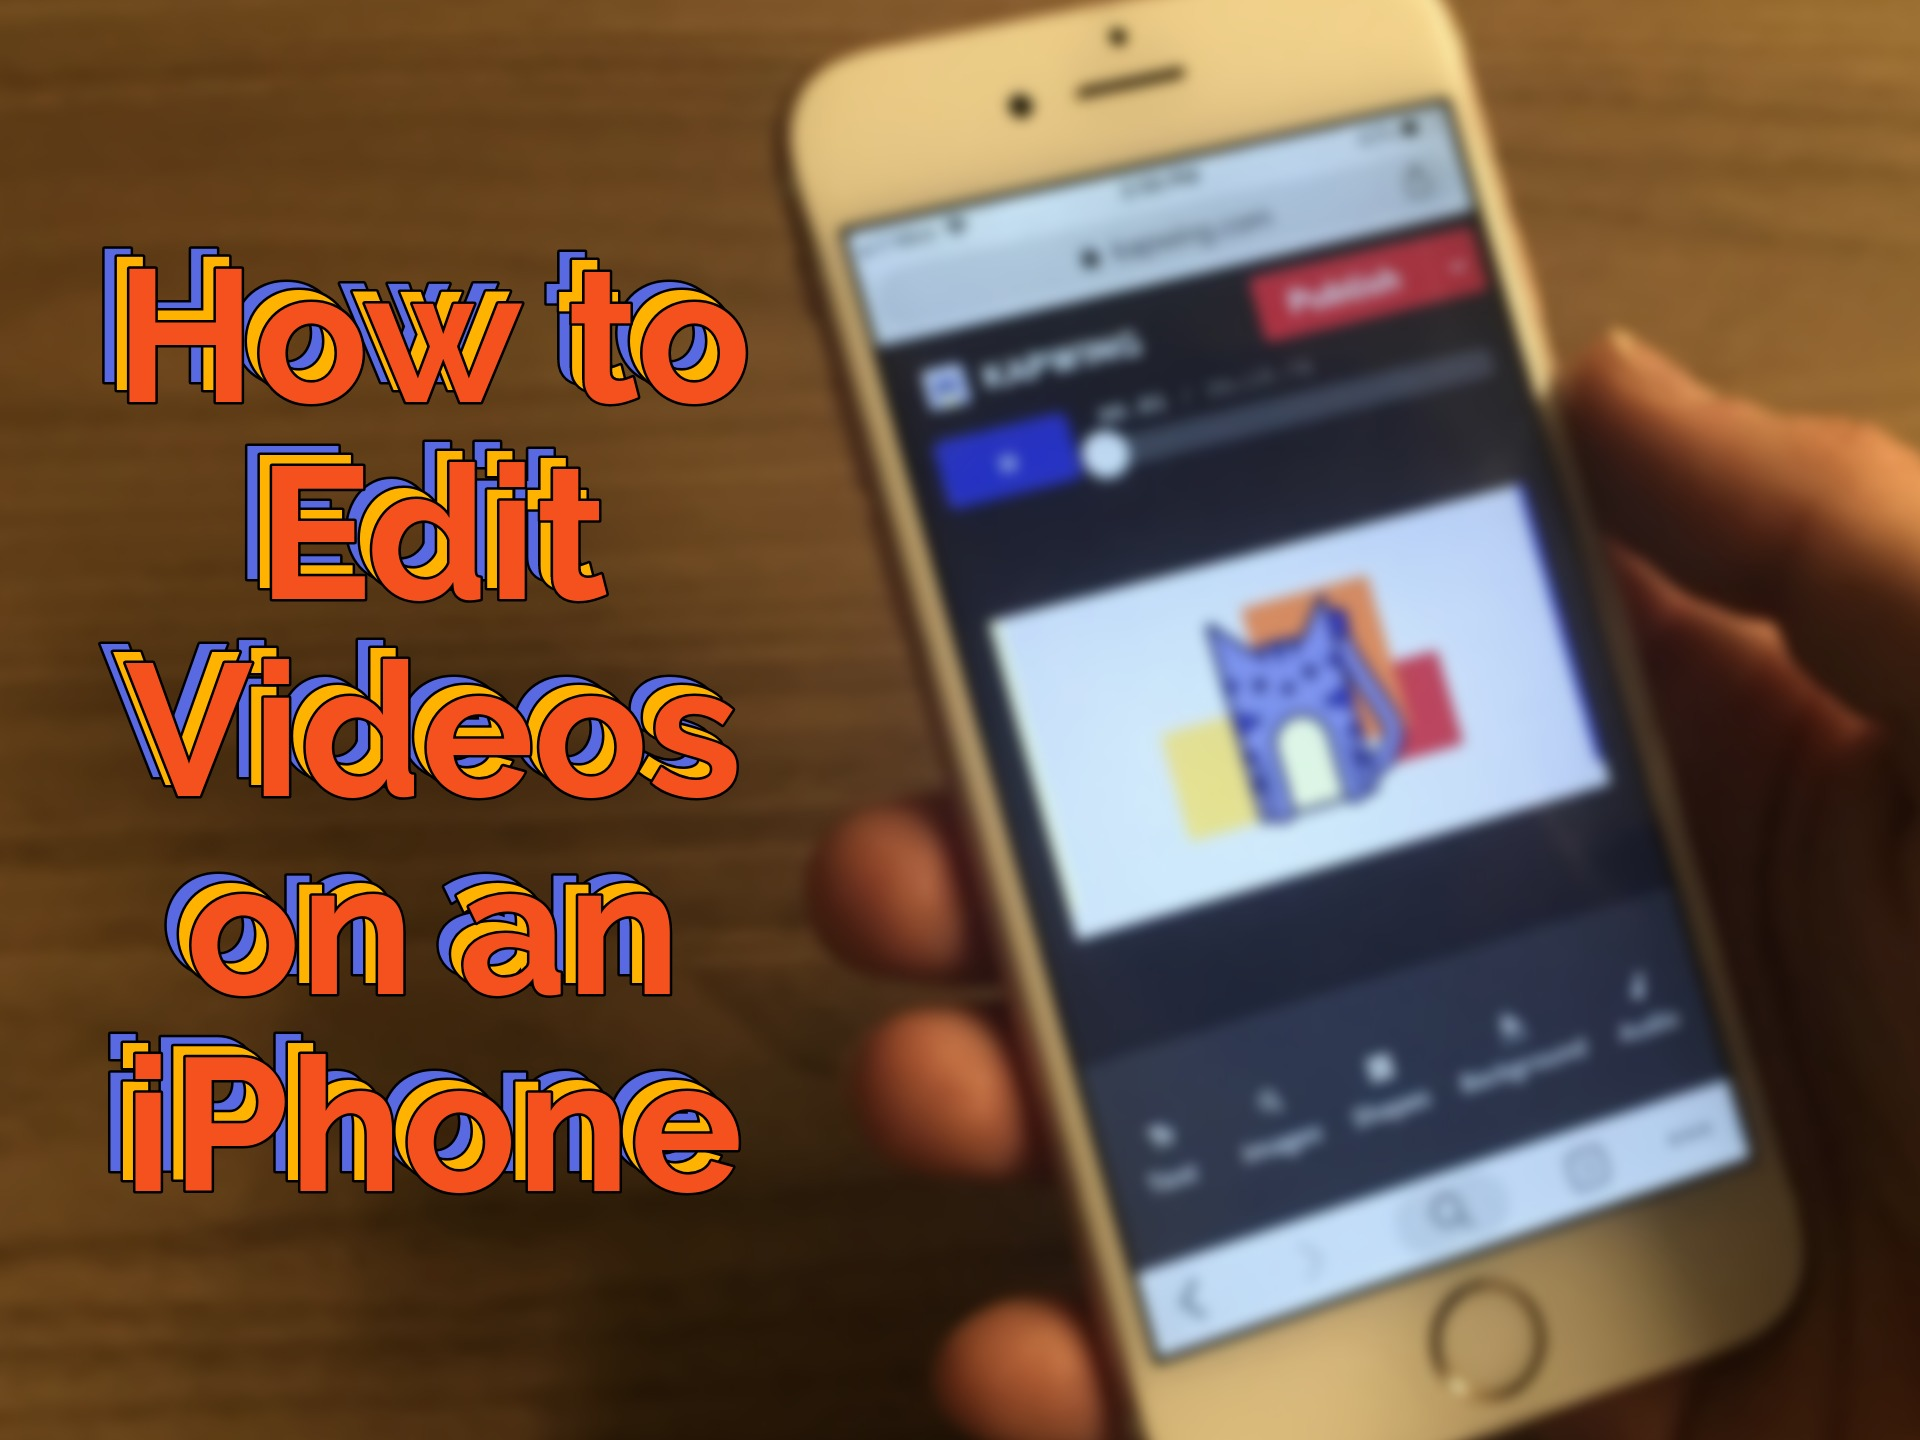 How to Edit Videos on an iPhone